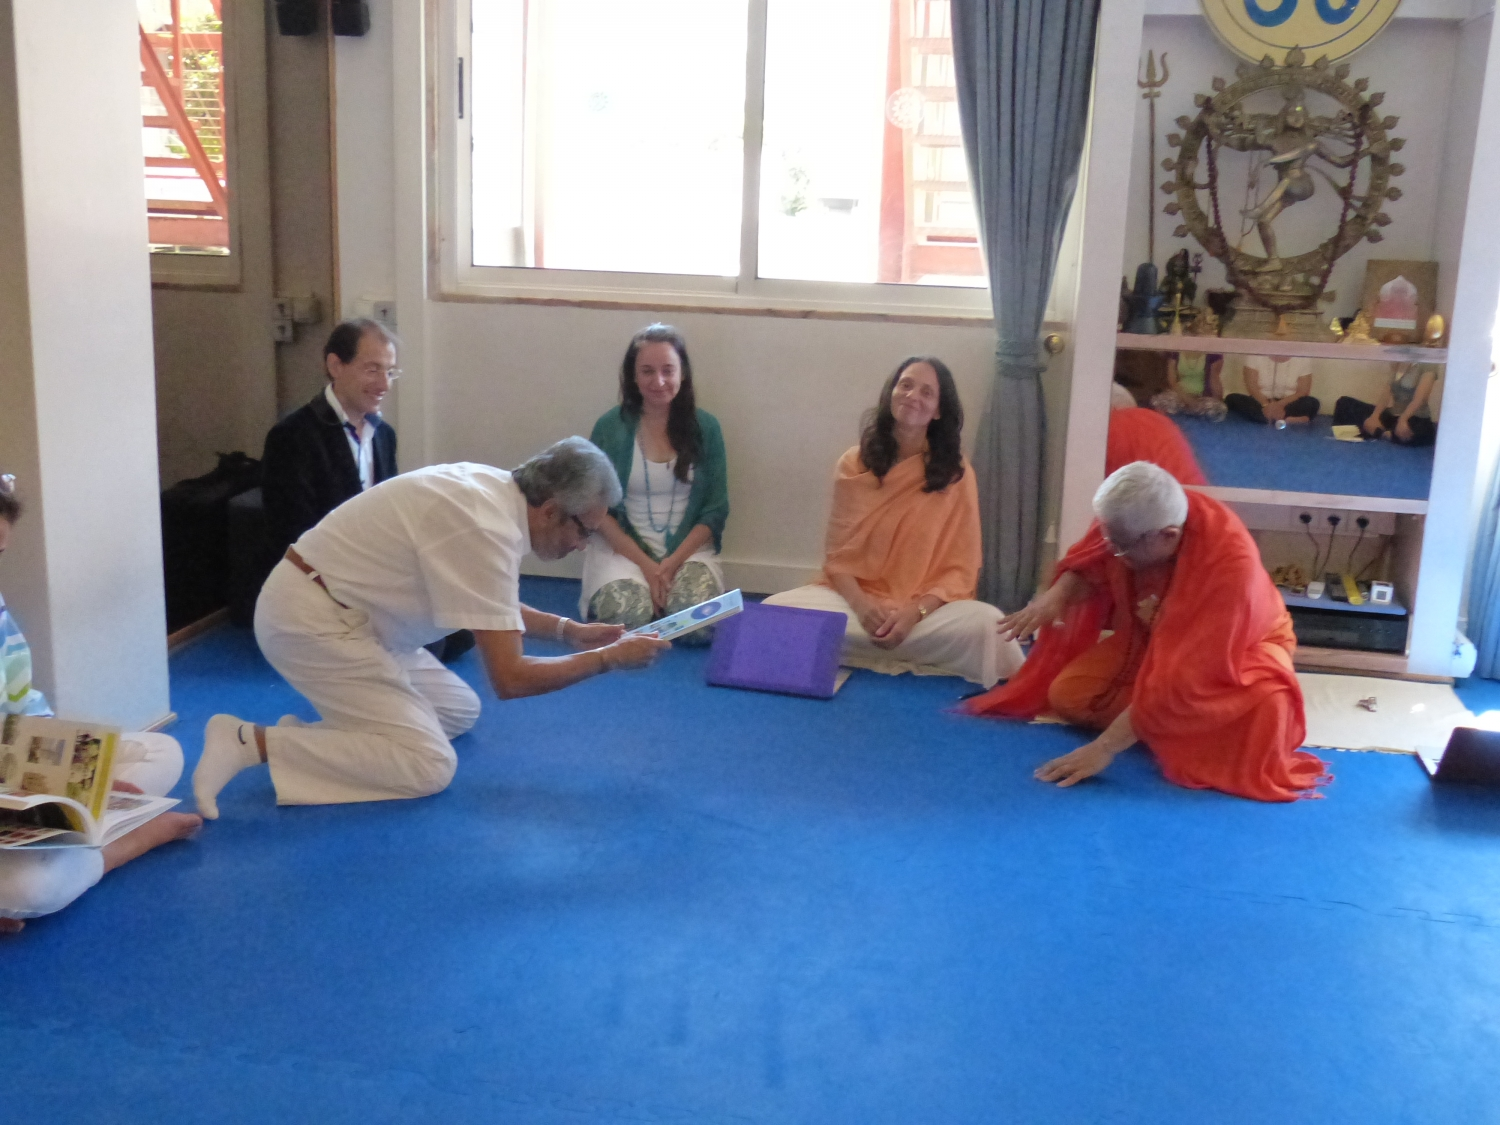 Visita de Bawa Jain - Secretário Geral do World Council of Religious Leaders - na Sede da Confederação Portuguesa do Yoga, Lisboa – 2015